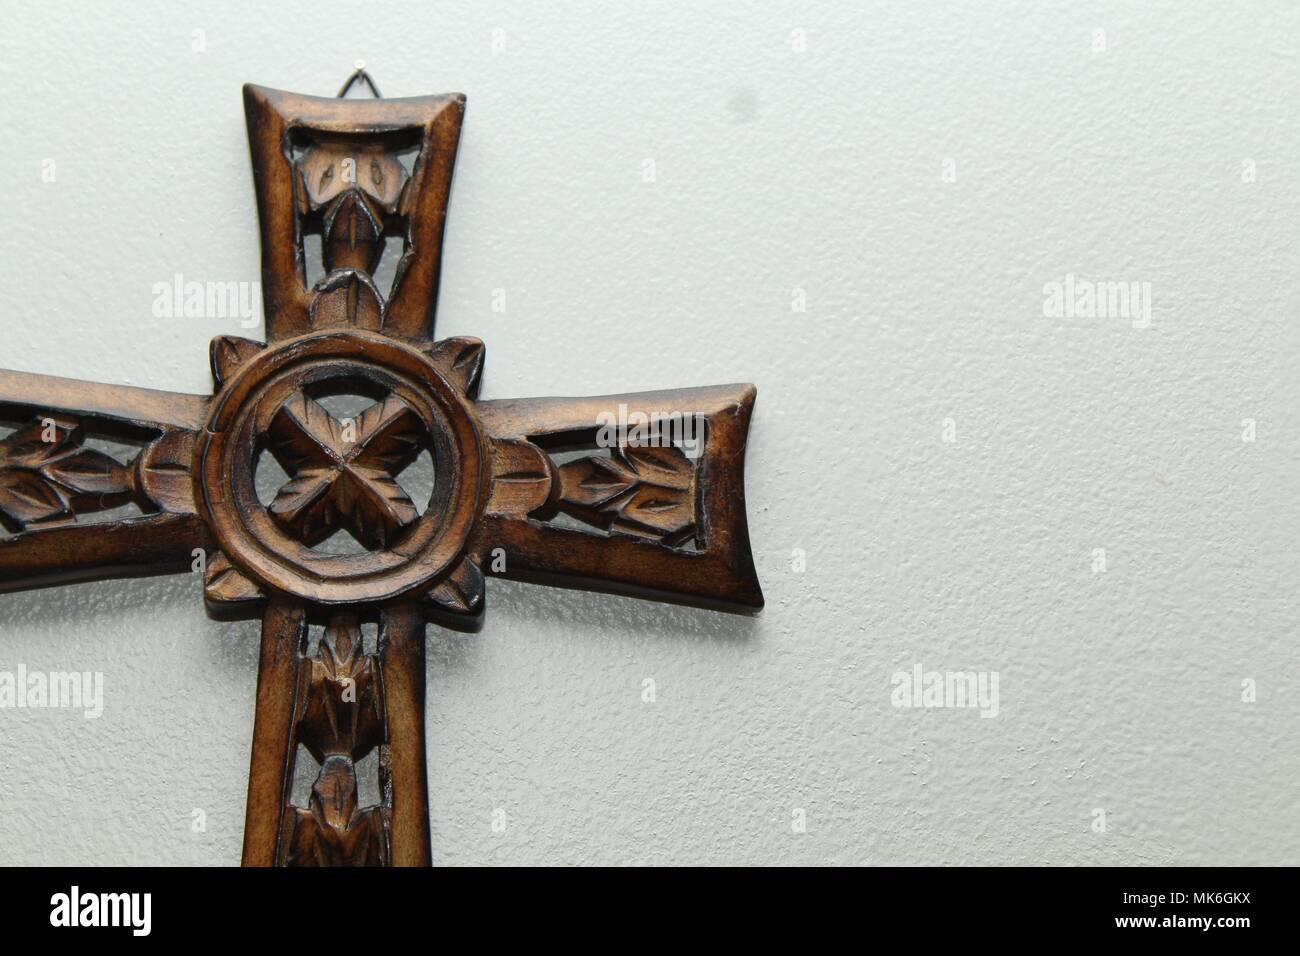 a wooden cross, Celtic style, on the left side of the frame with ...